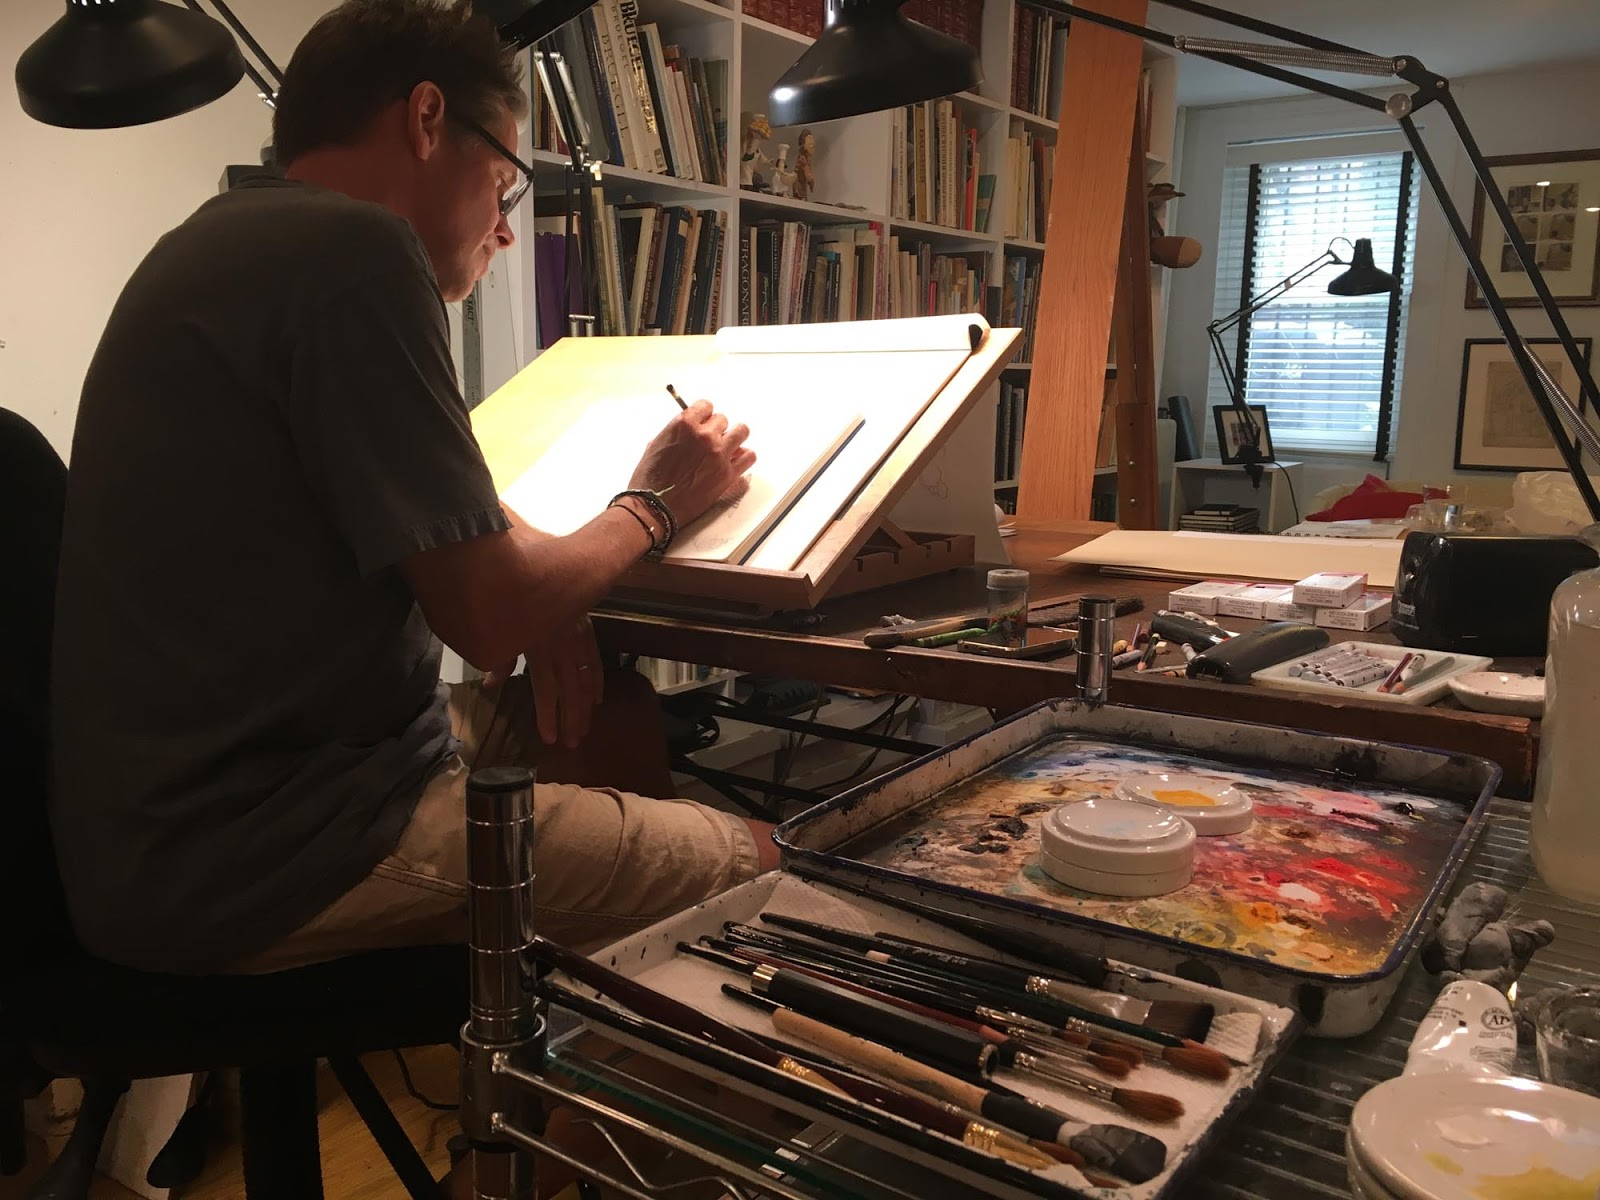 Studio Visit with Peter de Sève